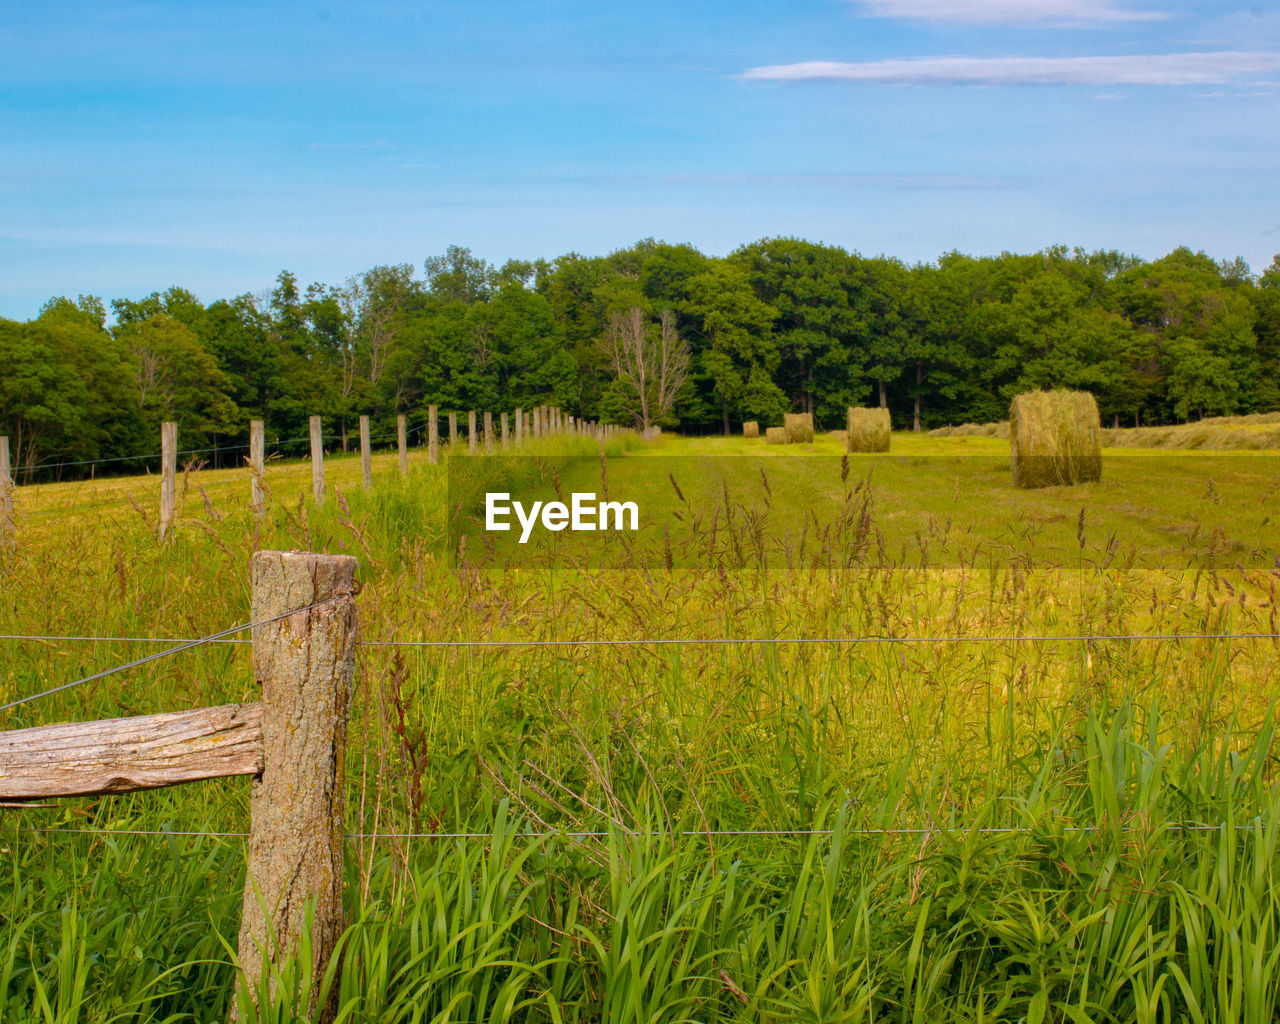 plant, tree, sky, landscape, land, grass, tranquility, tranquil scene, green color, field, beauty in nature, rural scene, nature, growth, no people, environment, wood - material, boundary, scenics - nature, fence, farm, outdoors, wooden post